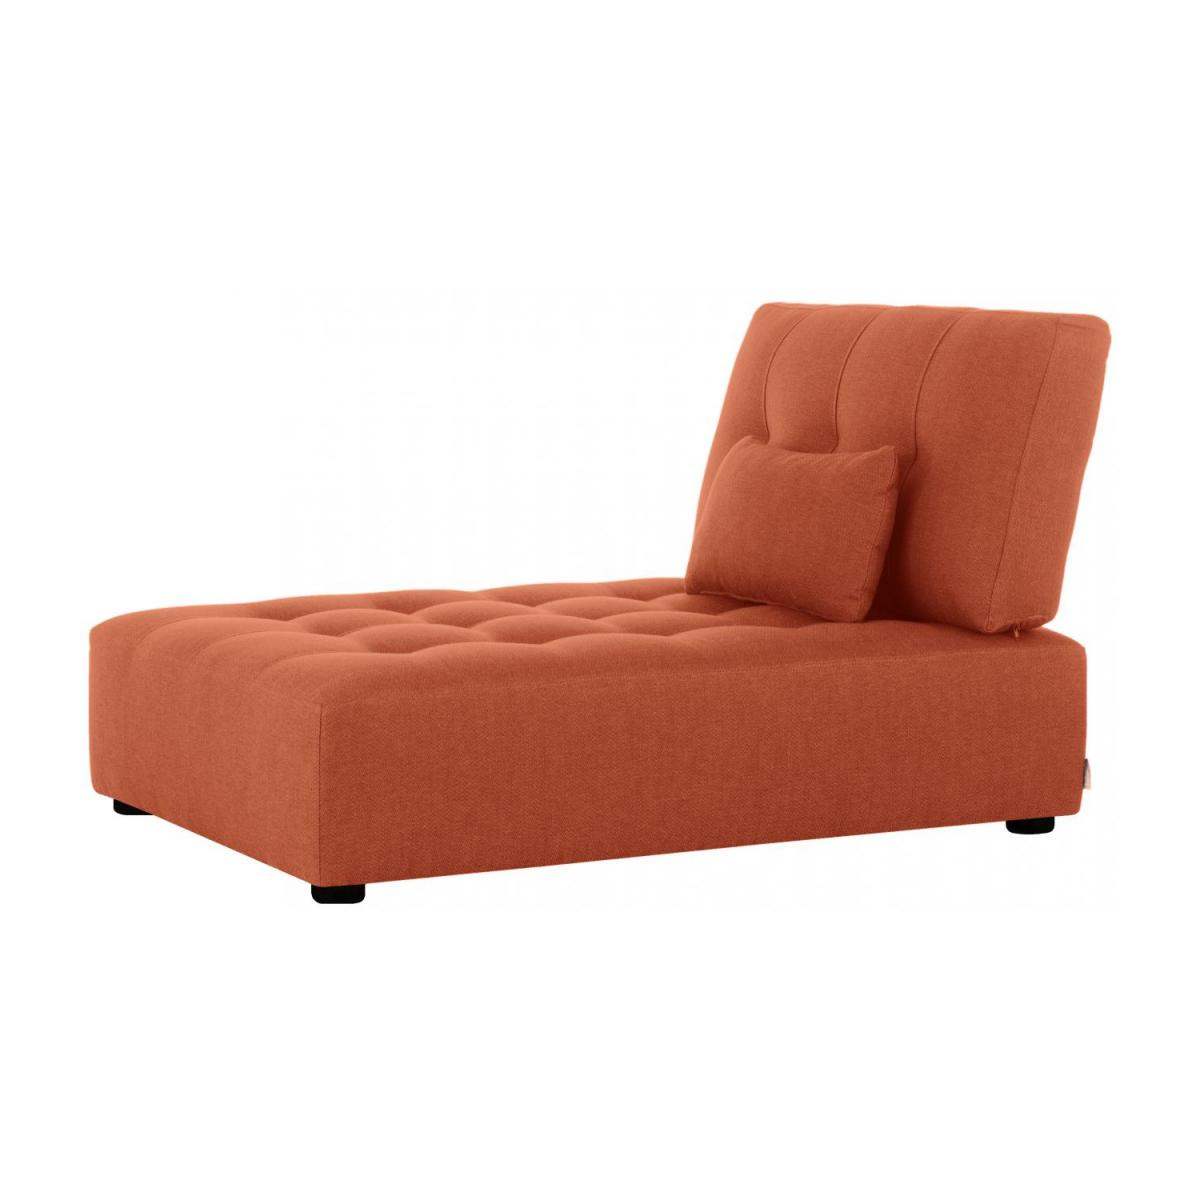 Chaiselongue aus Stoff - Orange n°1